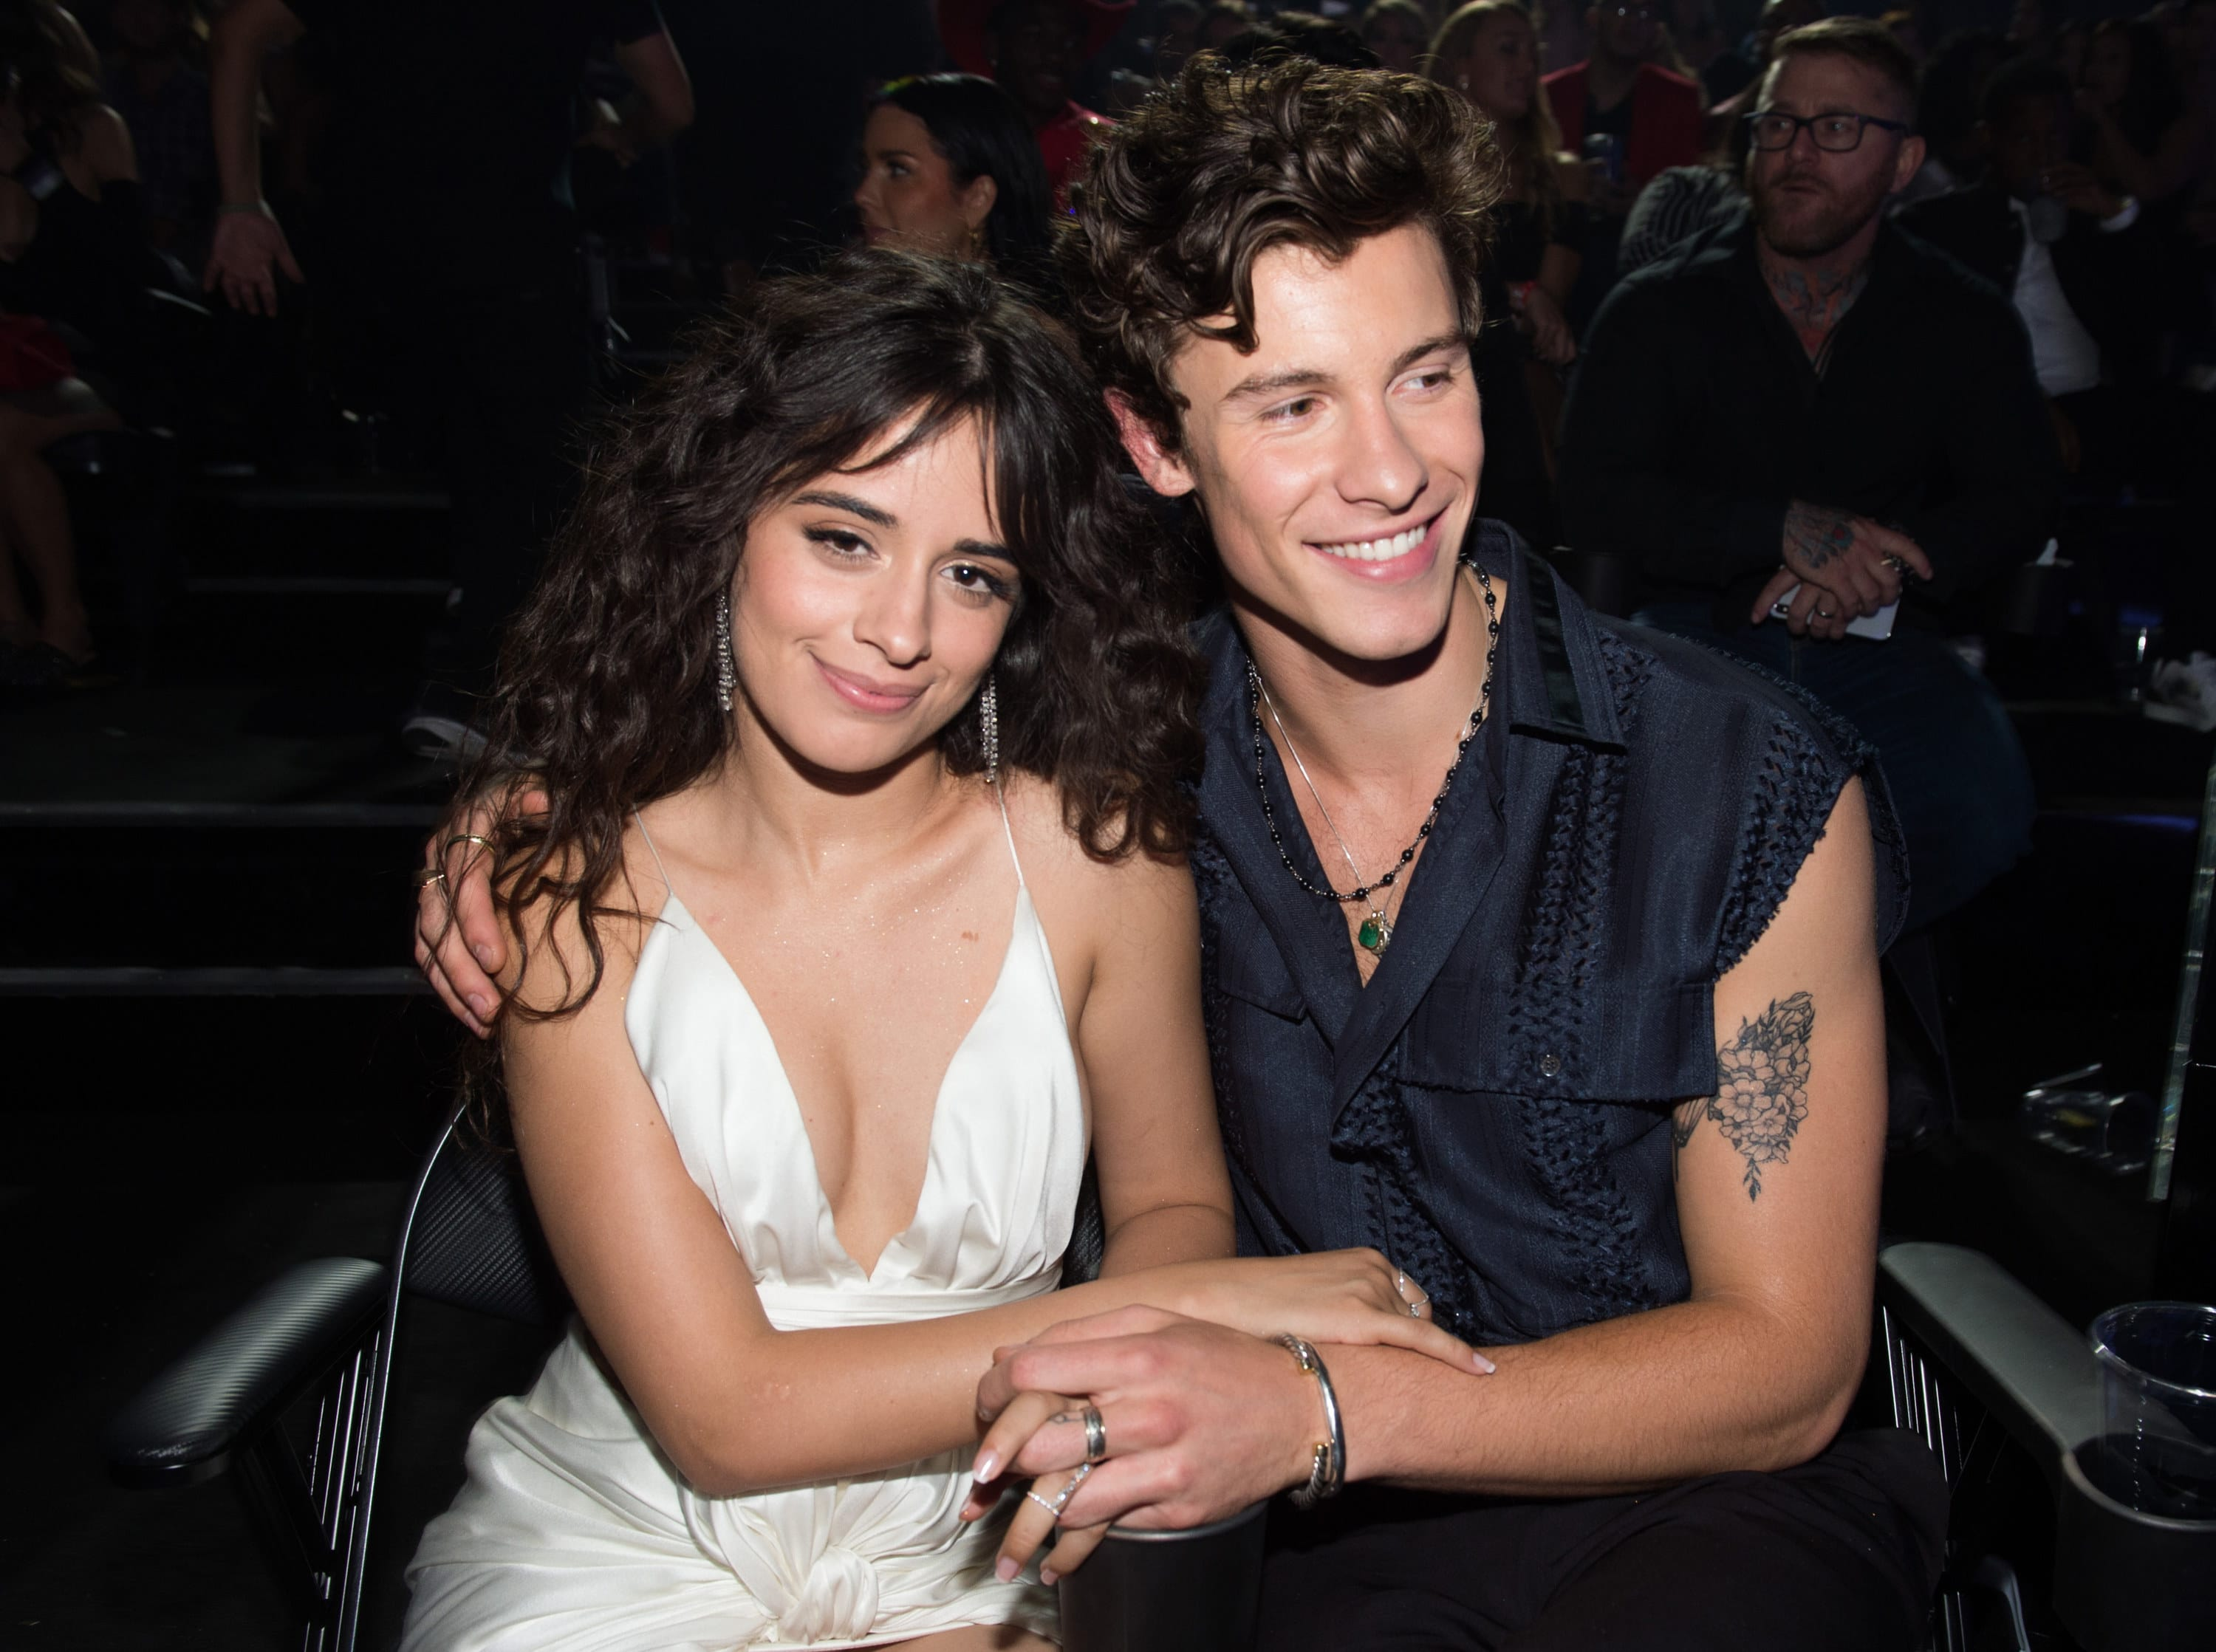 Shawn puts his arm around Camila while sitting at an event